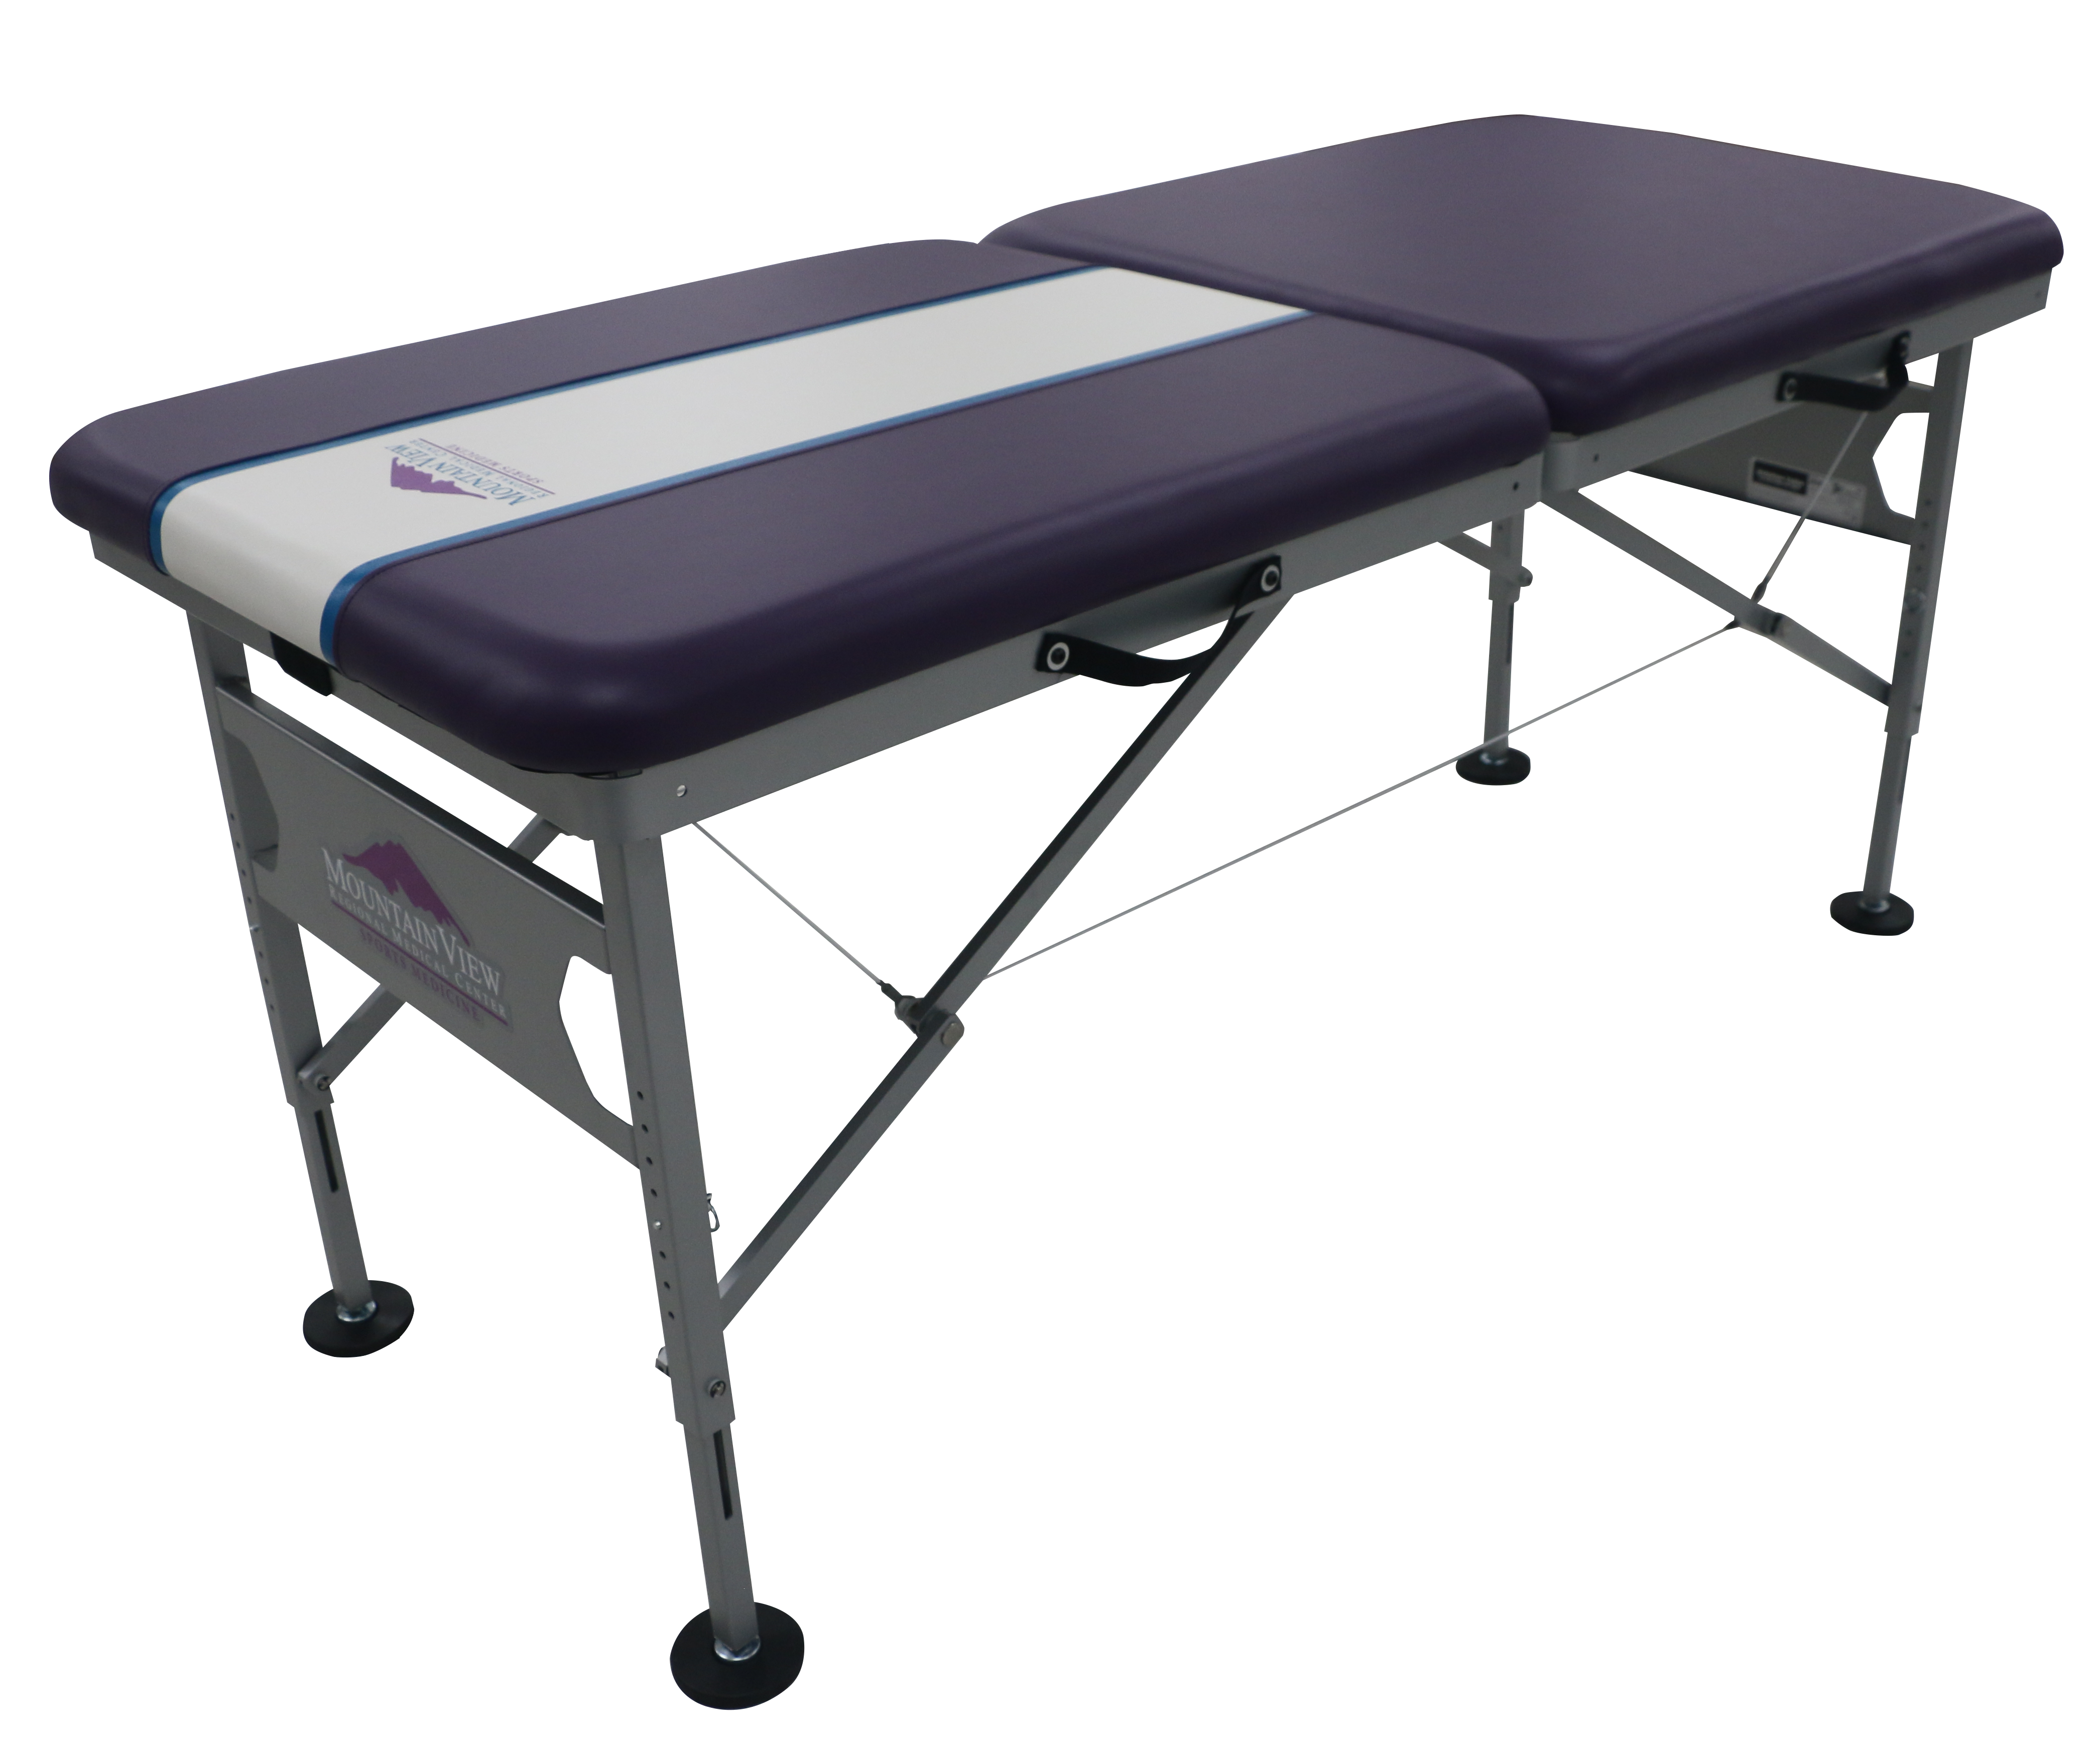 Mountain View-(Portable Sideline Table)